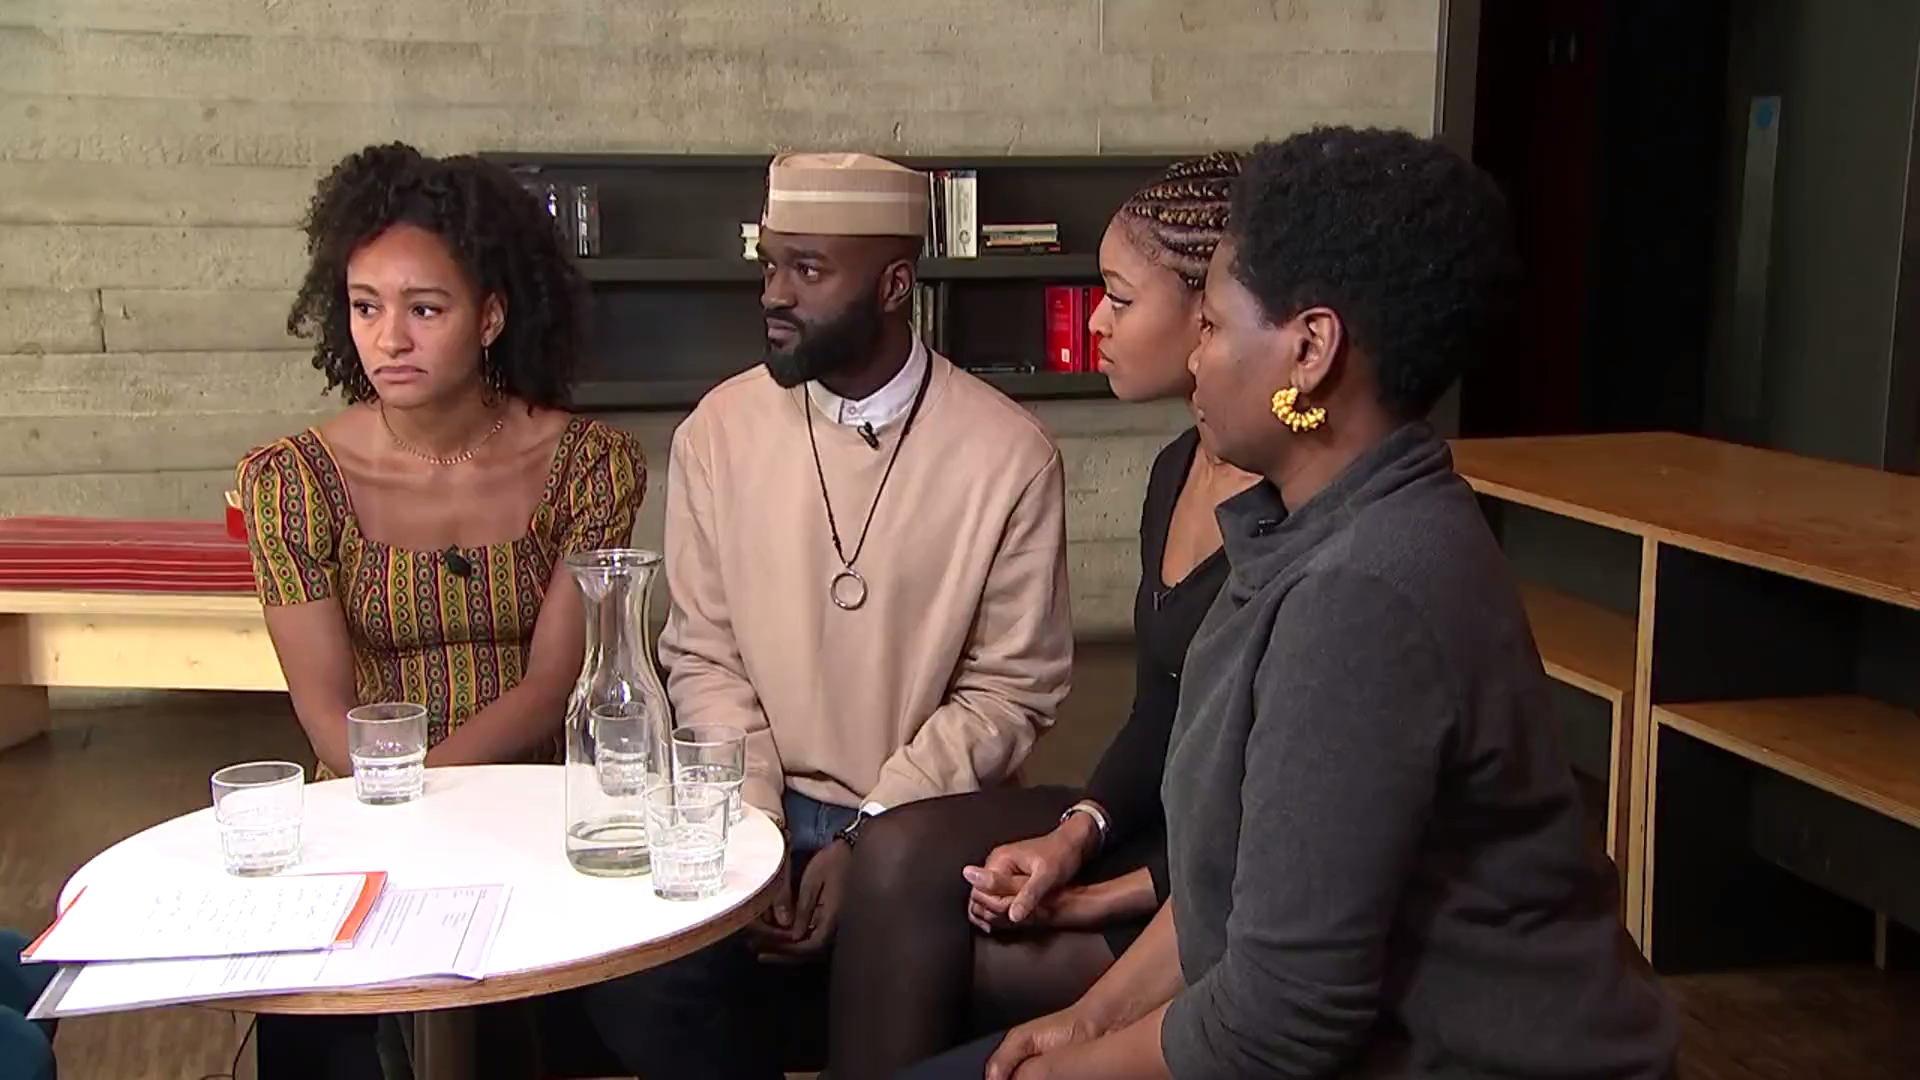 Chekhov's Three Sisters re-worked with black cast - channel 4